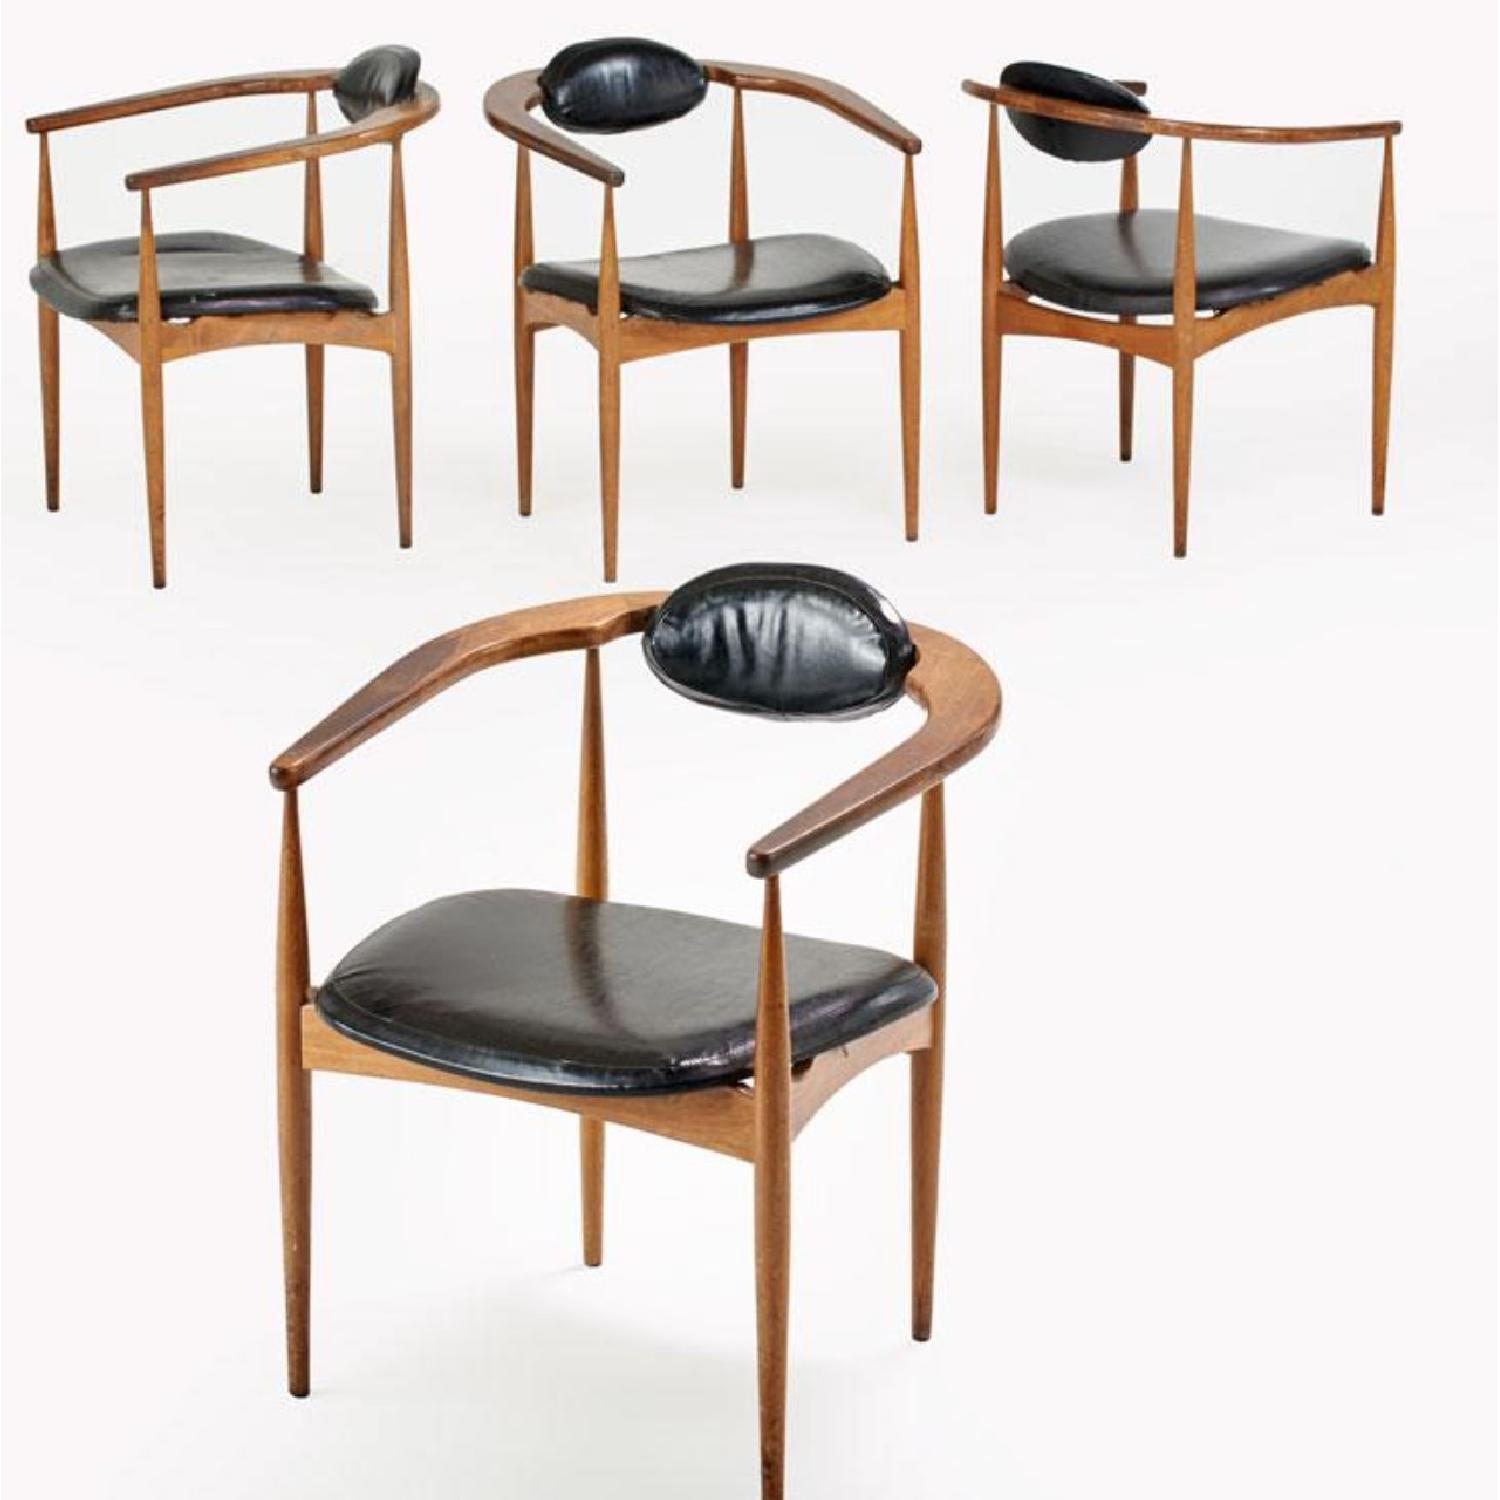 Vintage Adrian Pearsall Chairs - image-2